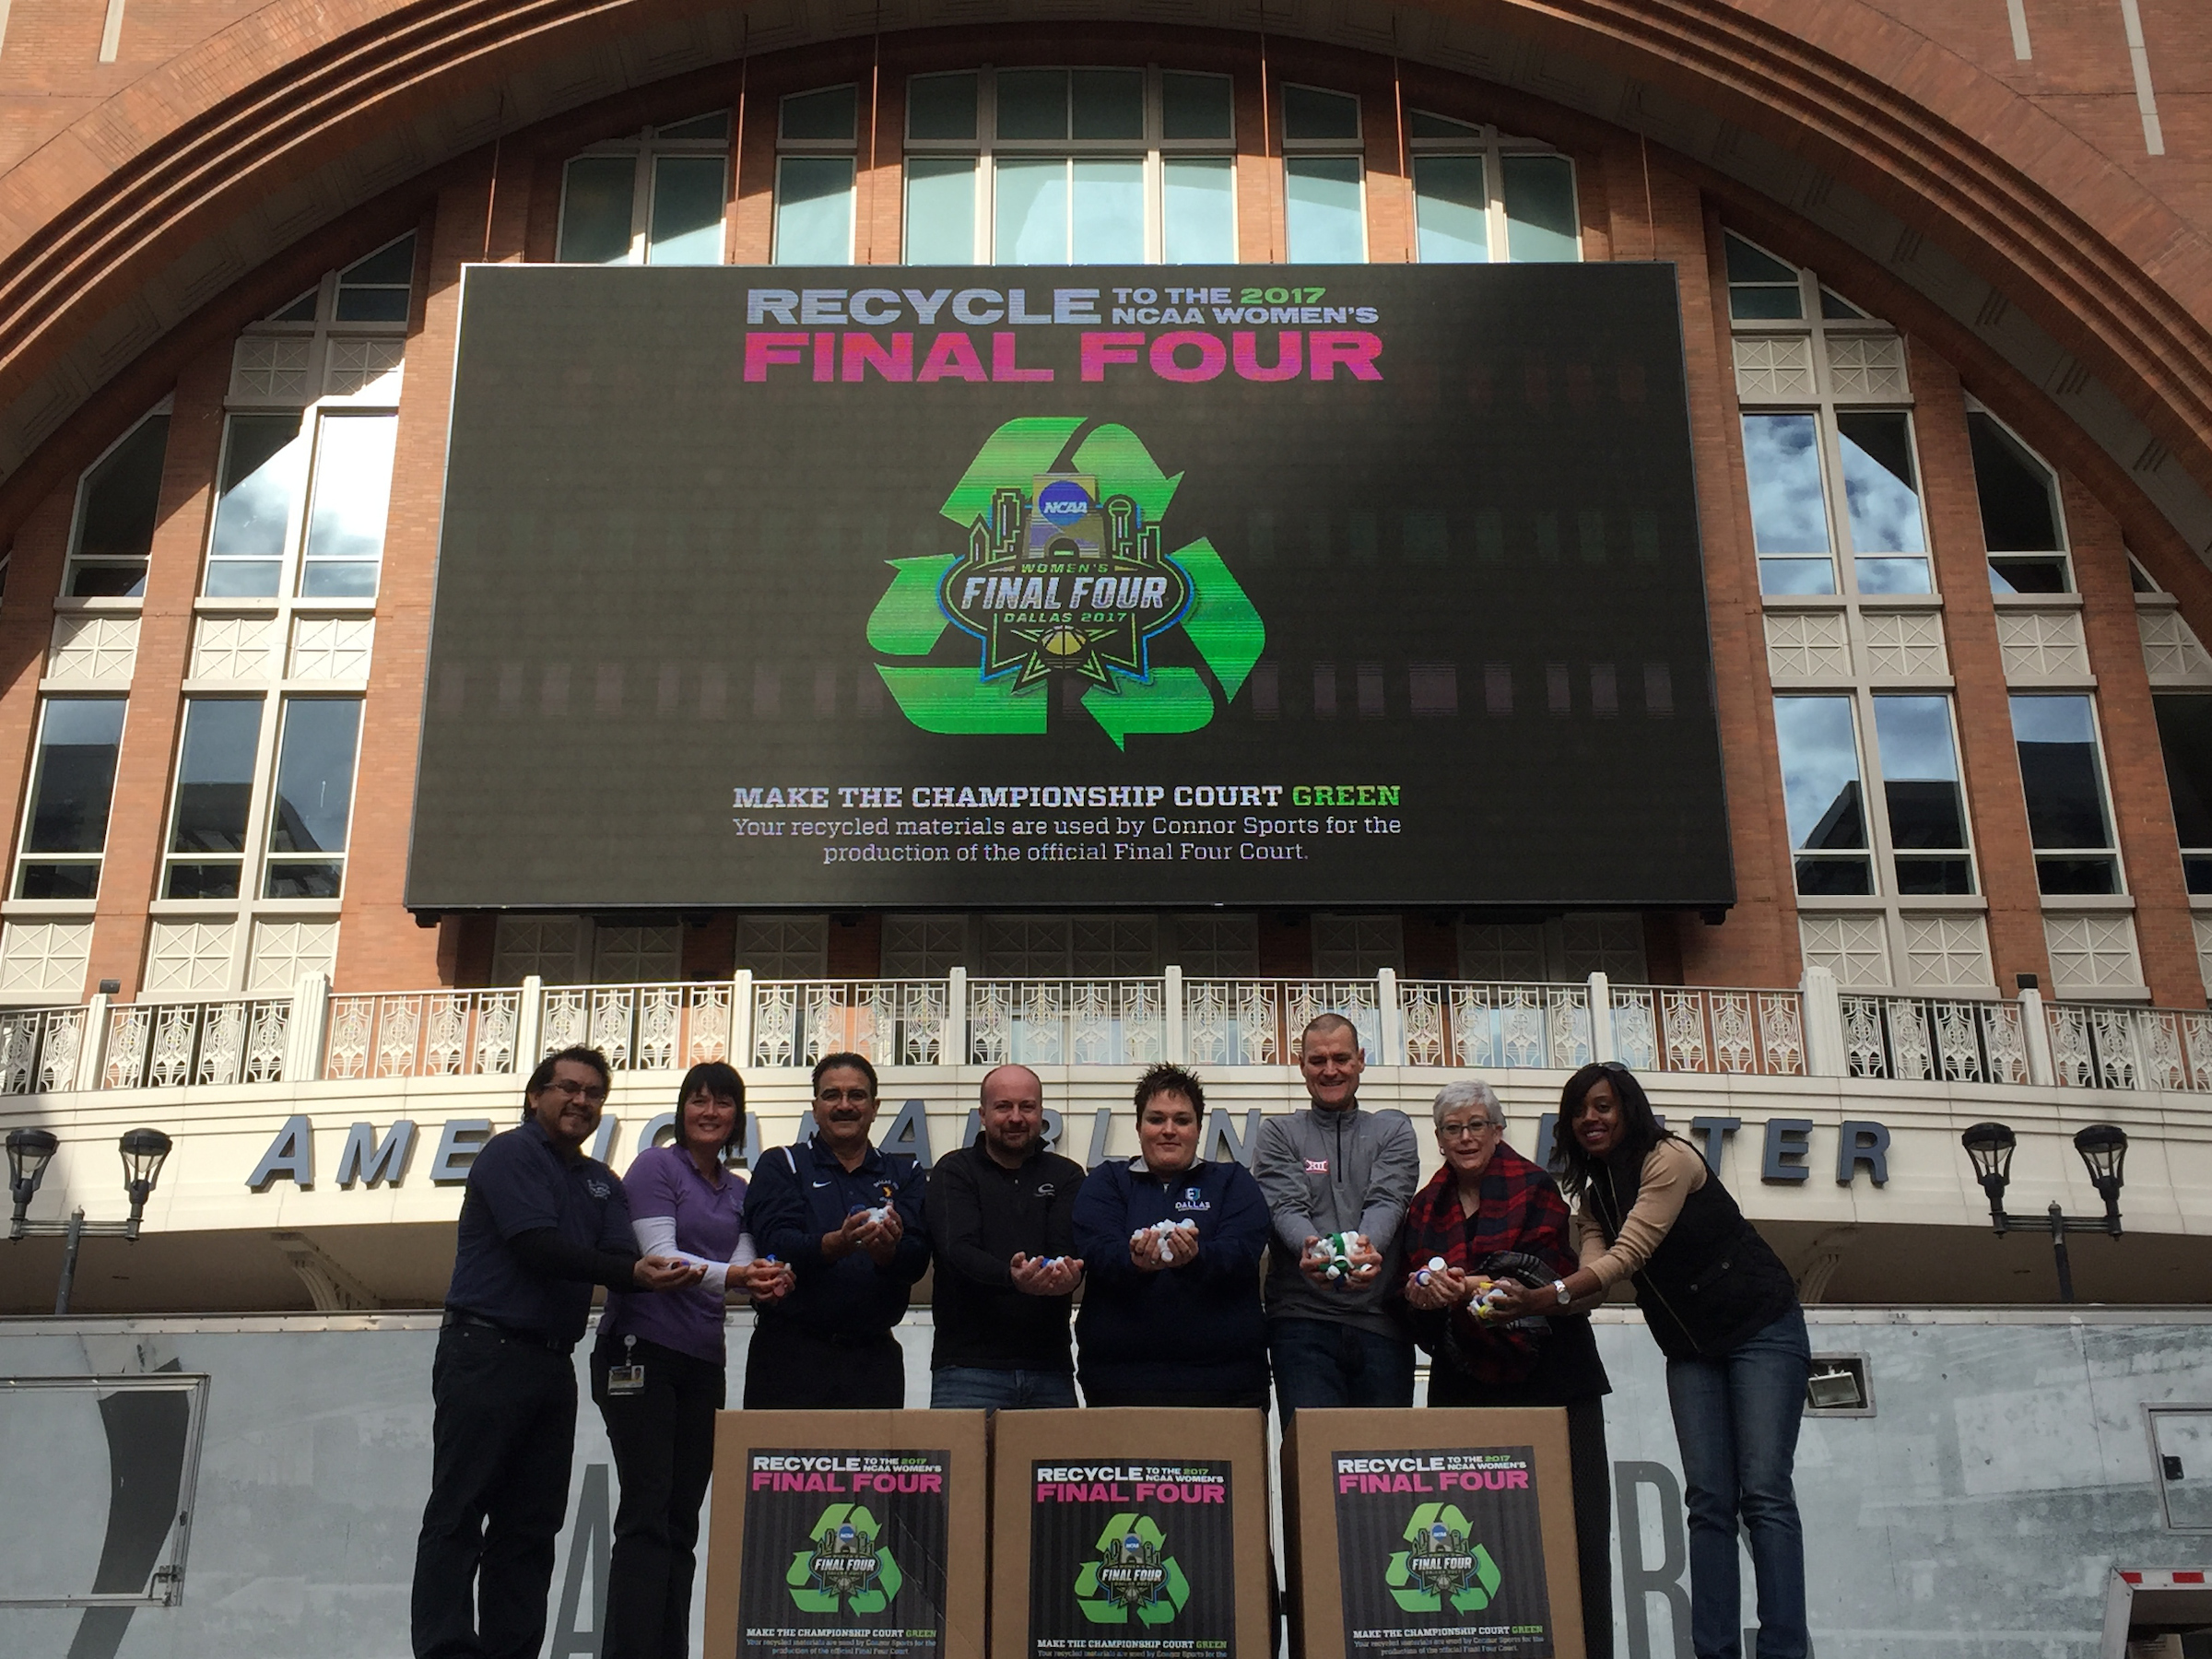 Office of Environmental Quality employees (left) represent the City of Dallas in the Recycle to the Final Four ceremony